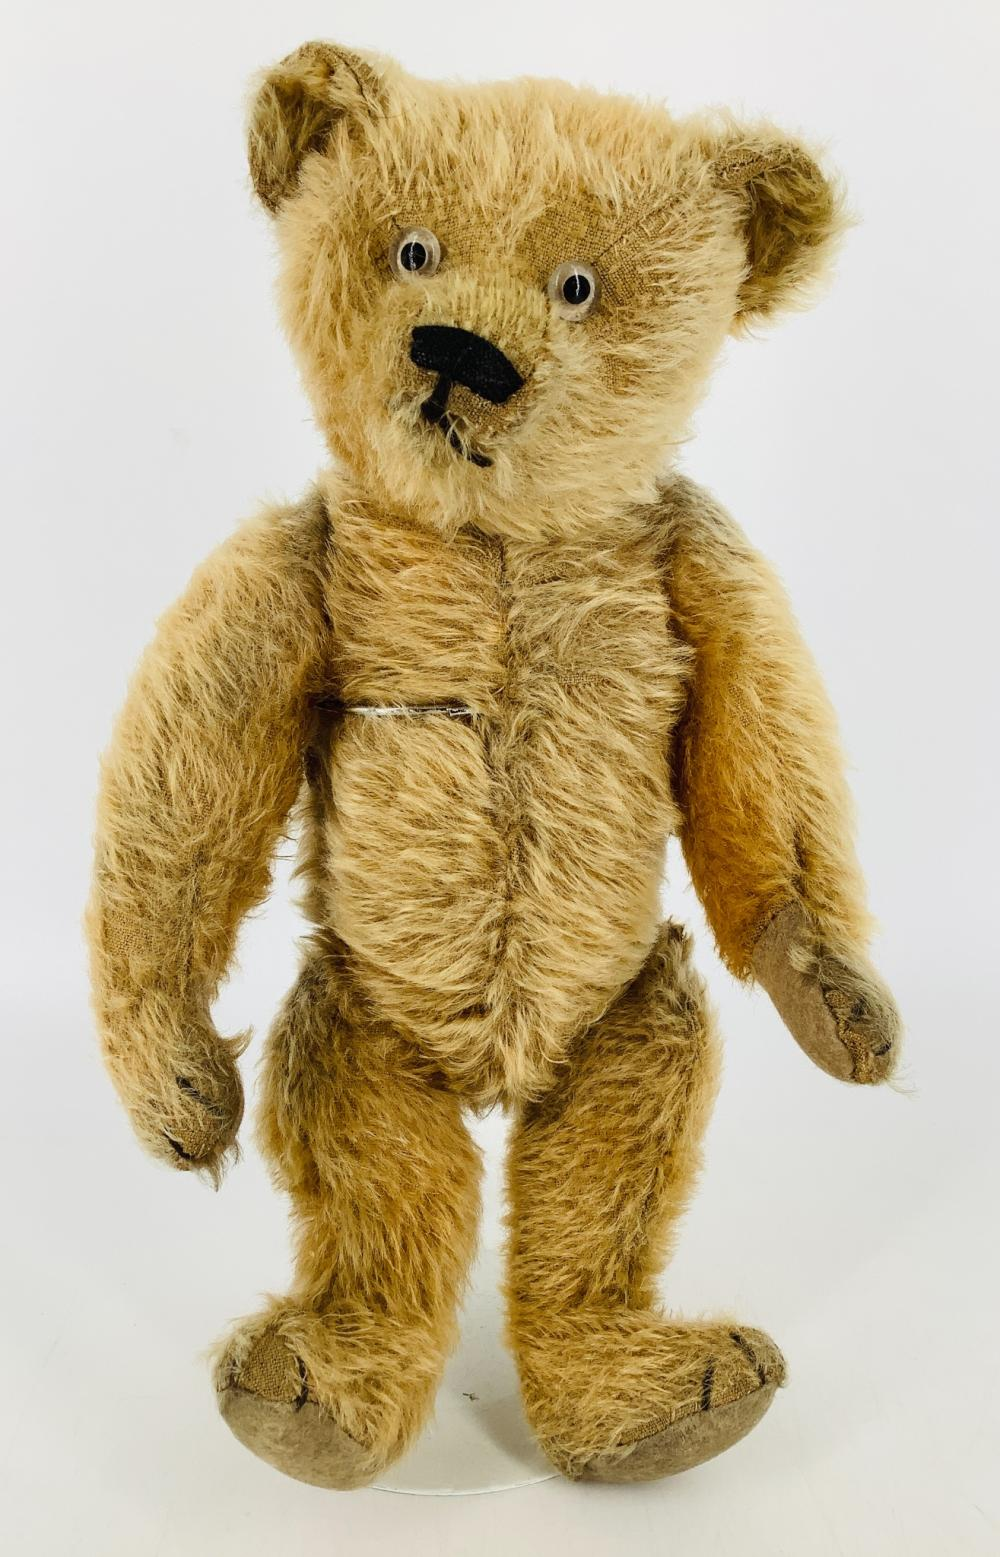 """Vintage mohair teddy bear. 14"""" bear, unknown origin, disk jointed at neck, shoulders and hips, applied ears, stitched nose, glass eyes, felt paw pads. In overall good condition with almost no loss to mohair. unusual j..."""